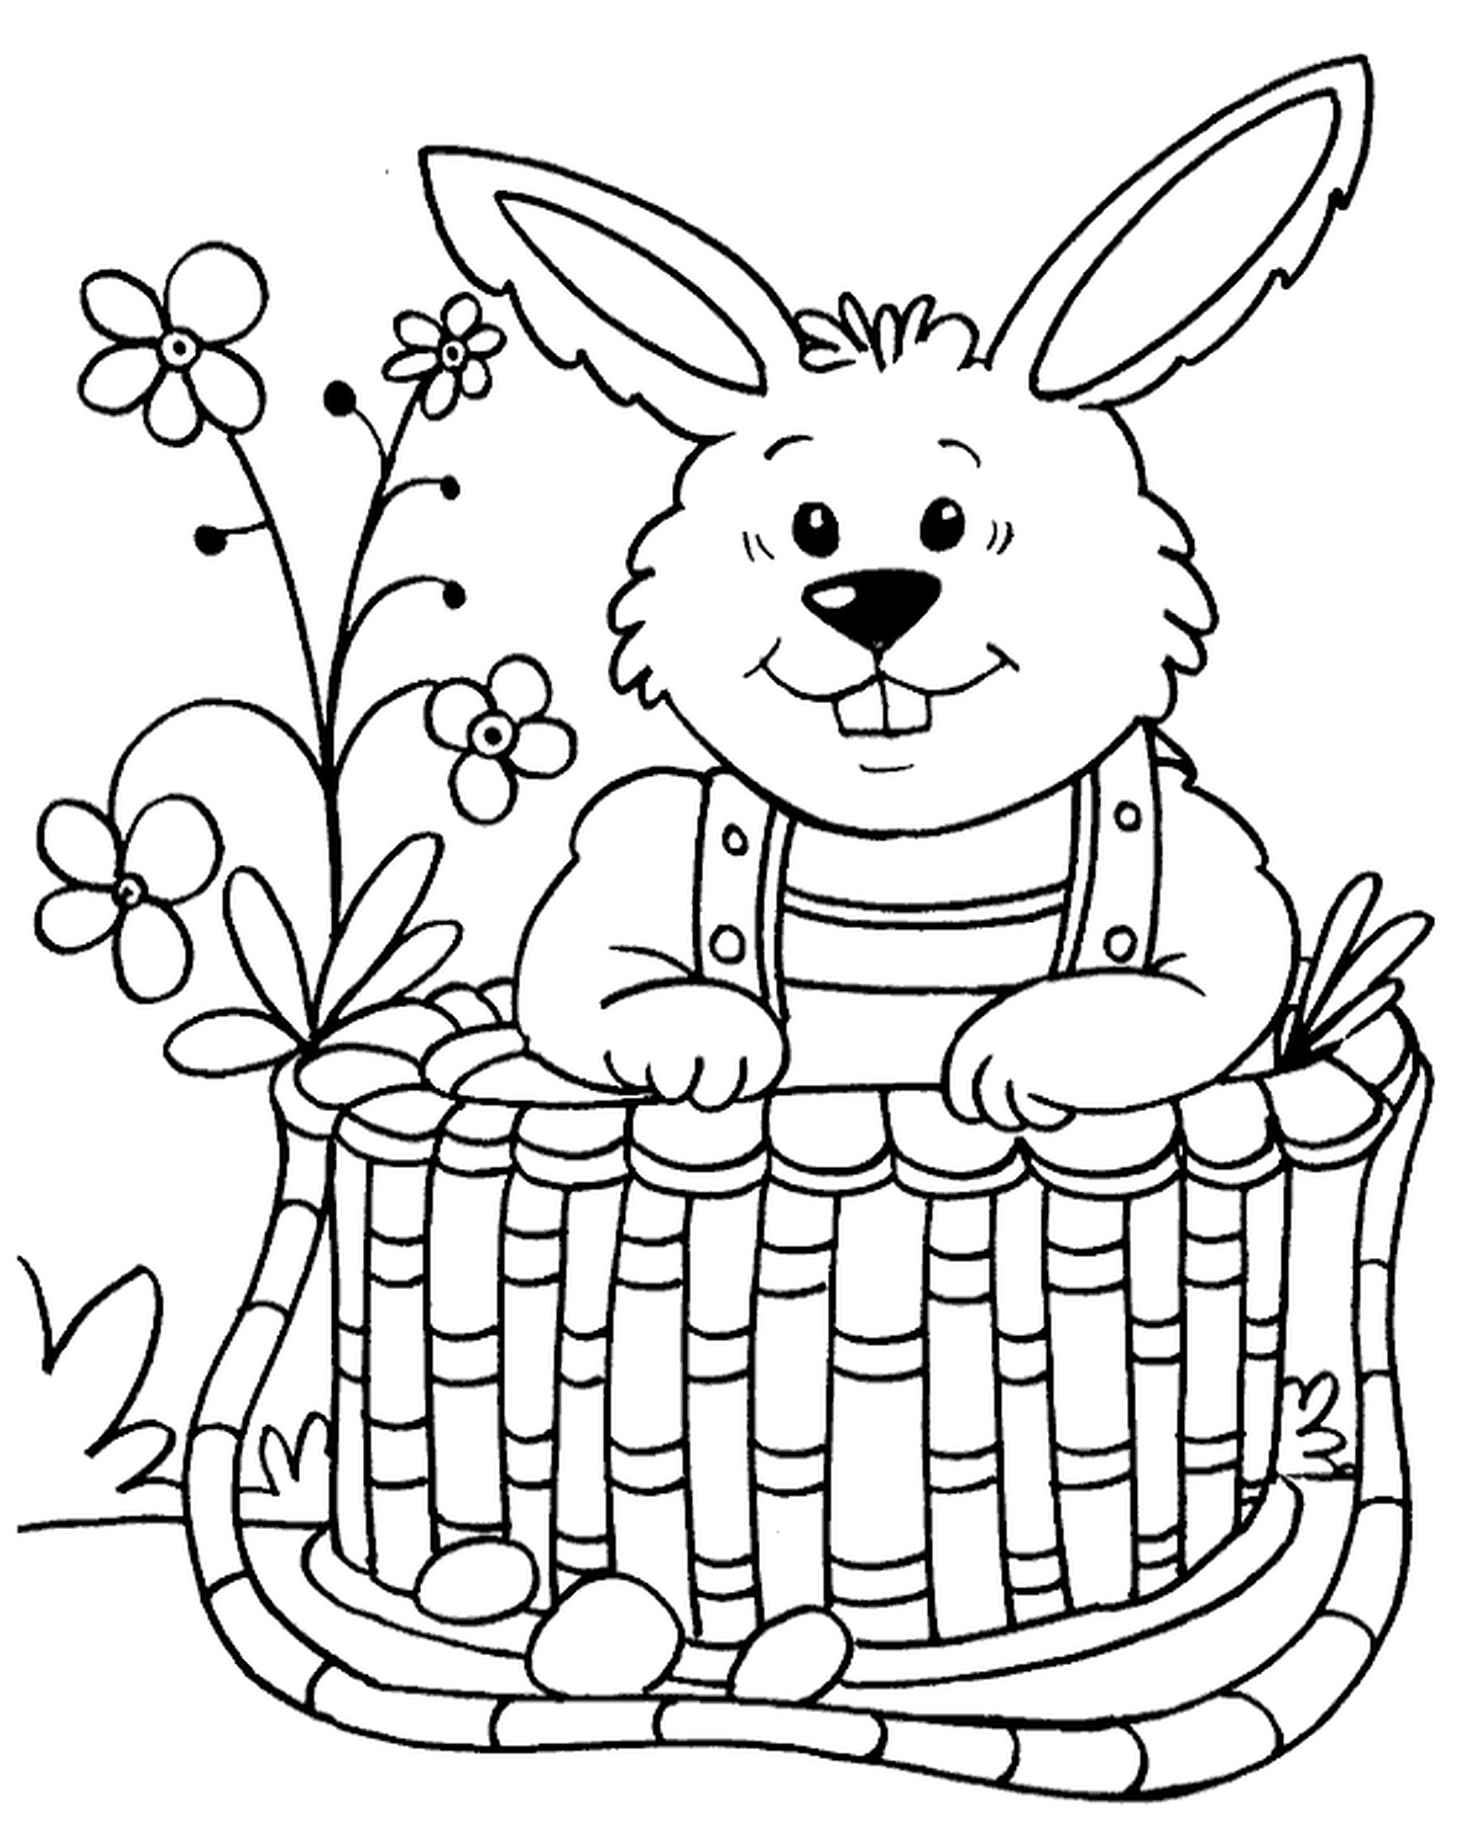 Bulky Easter Bunny Sitting In The Basket Coloring Sheet